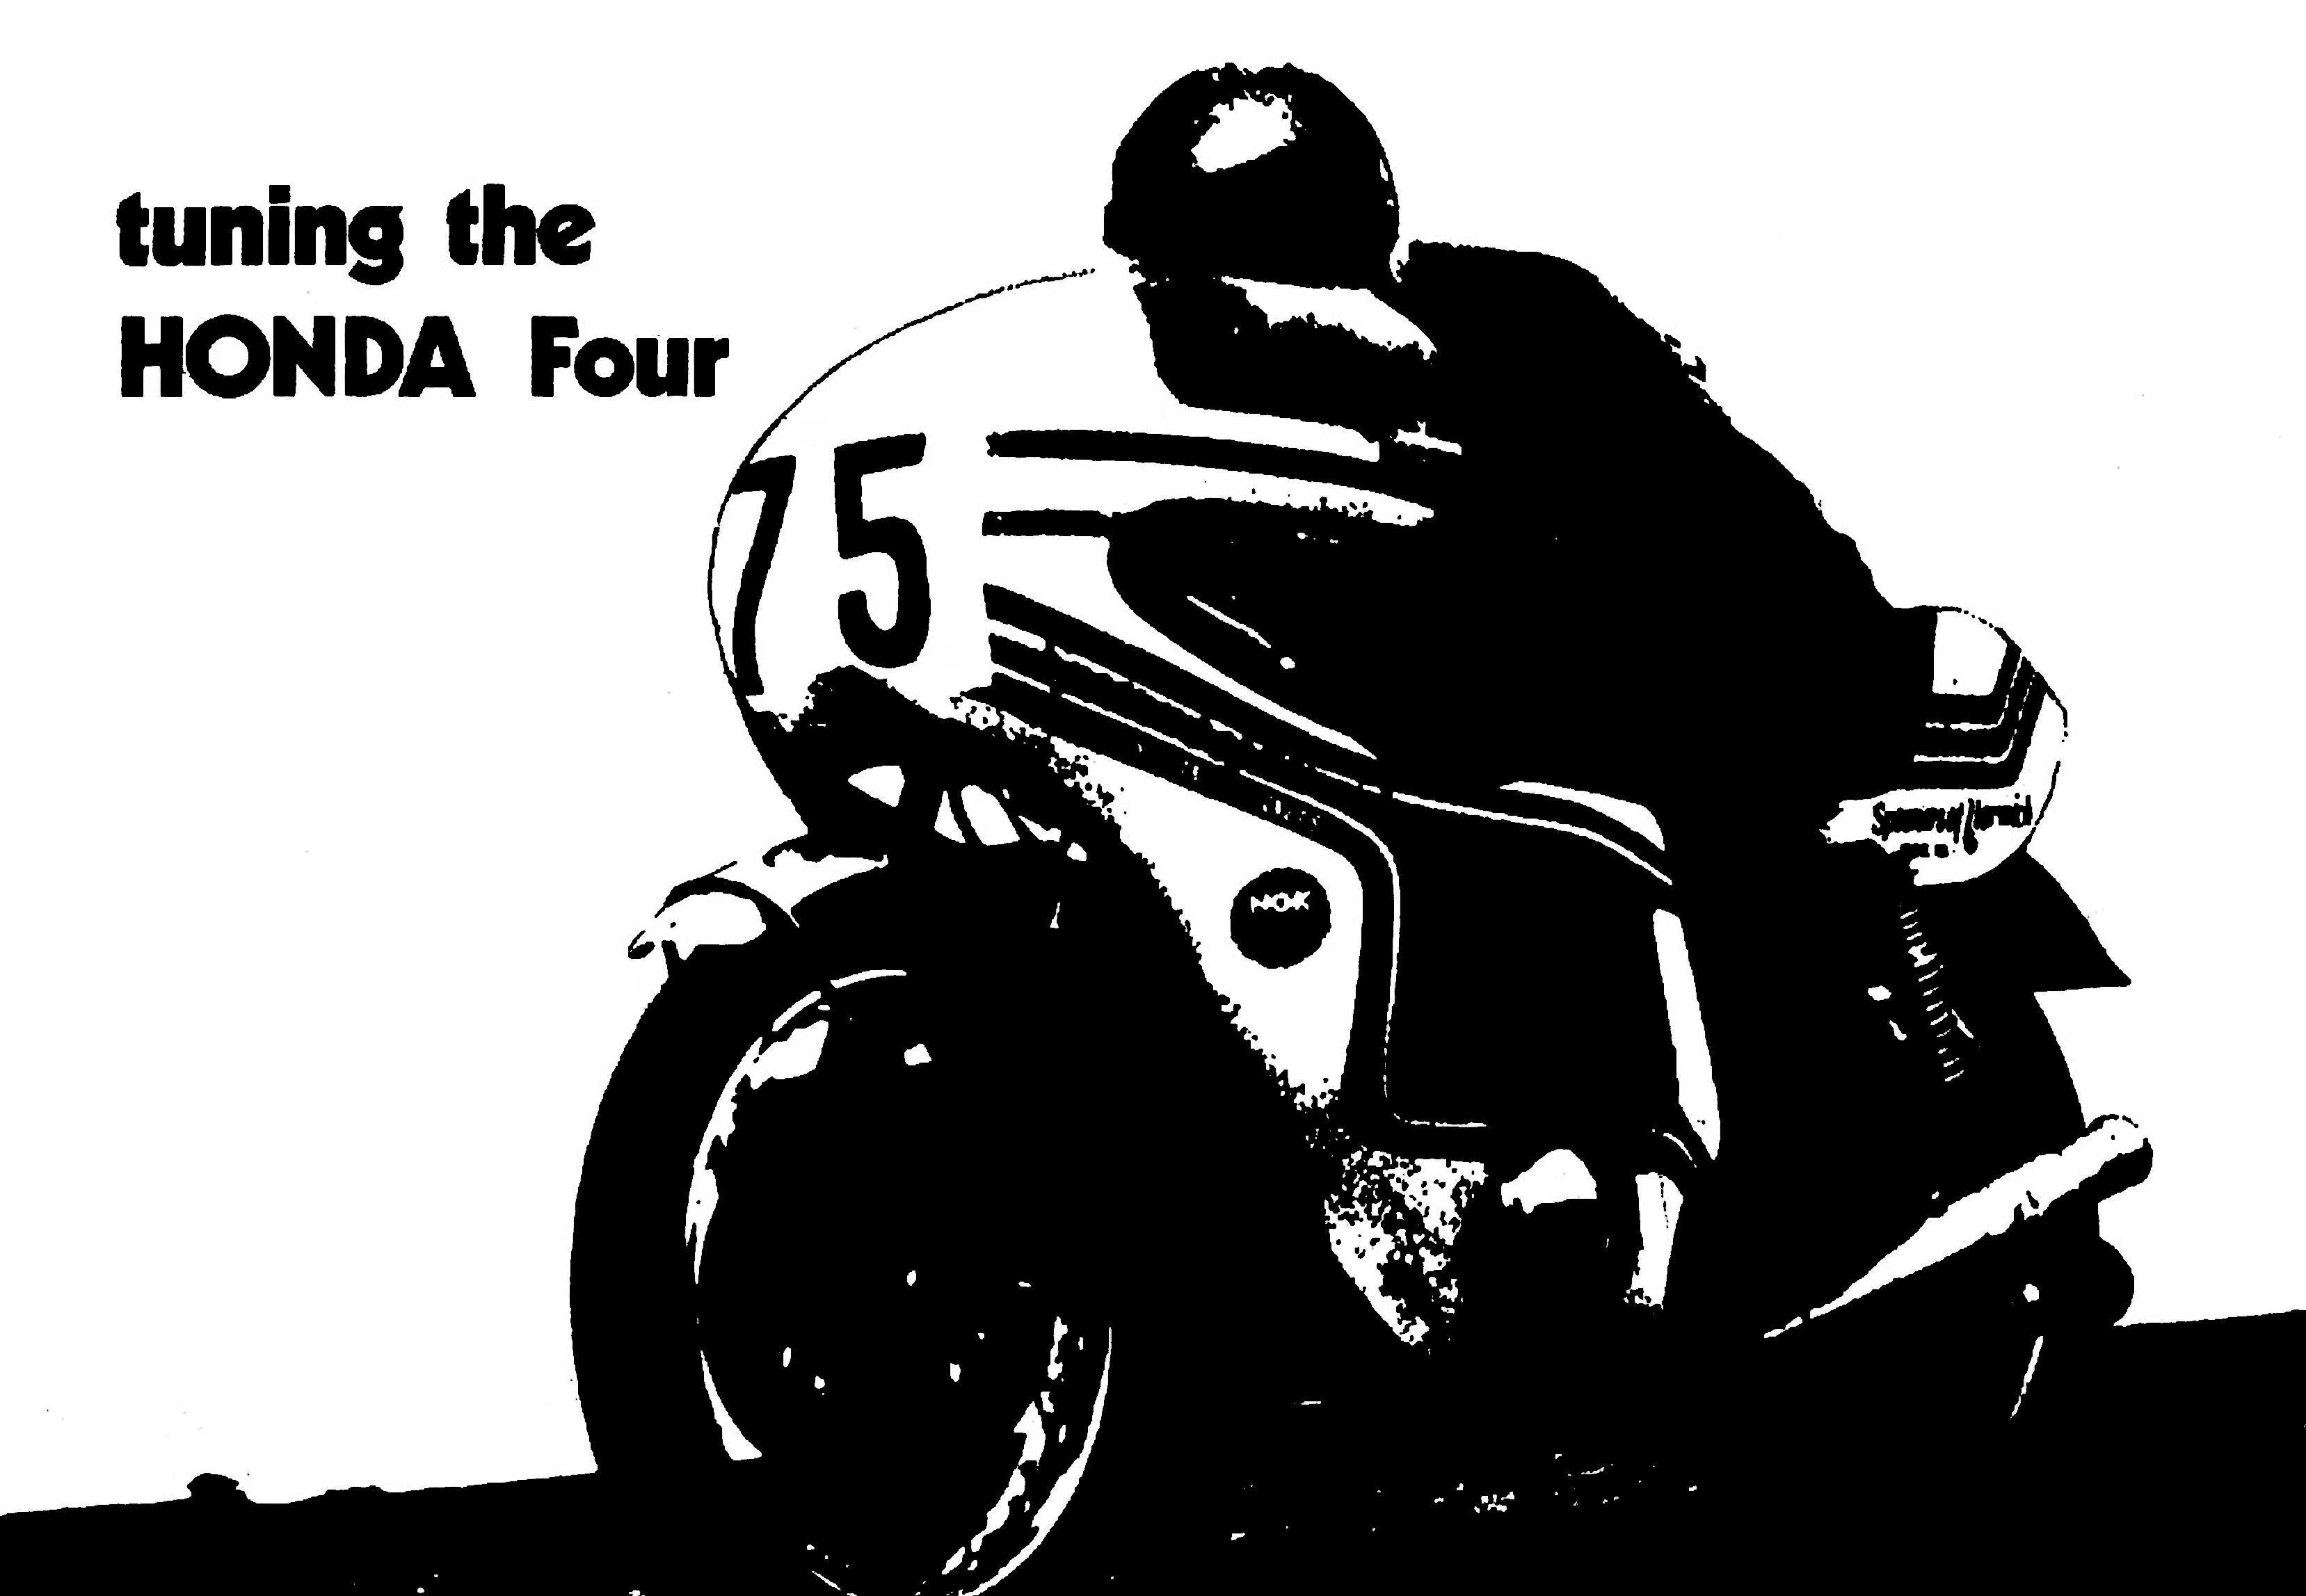 Honda Four Tuning Manual for Honda CB350F